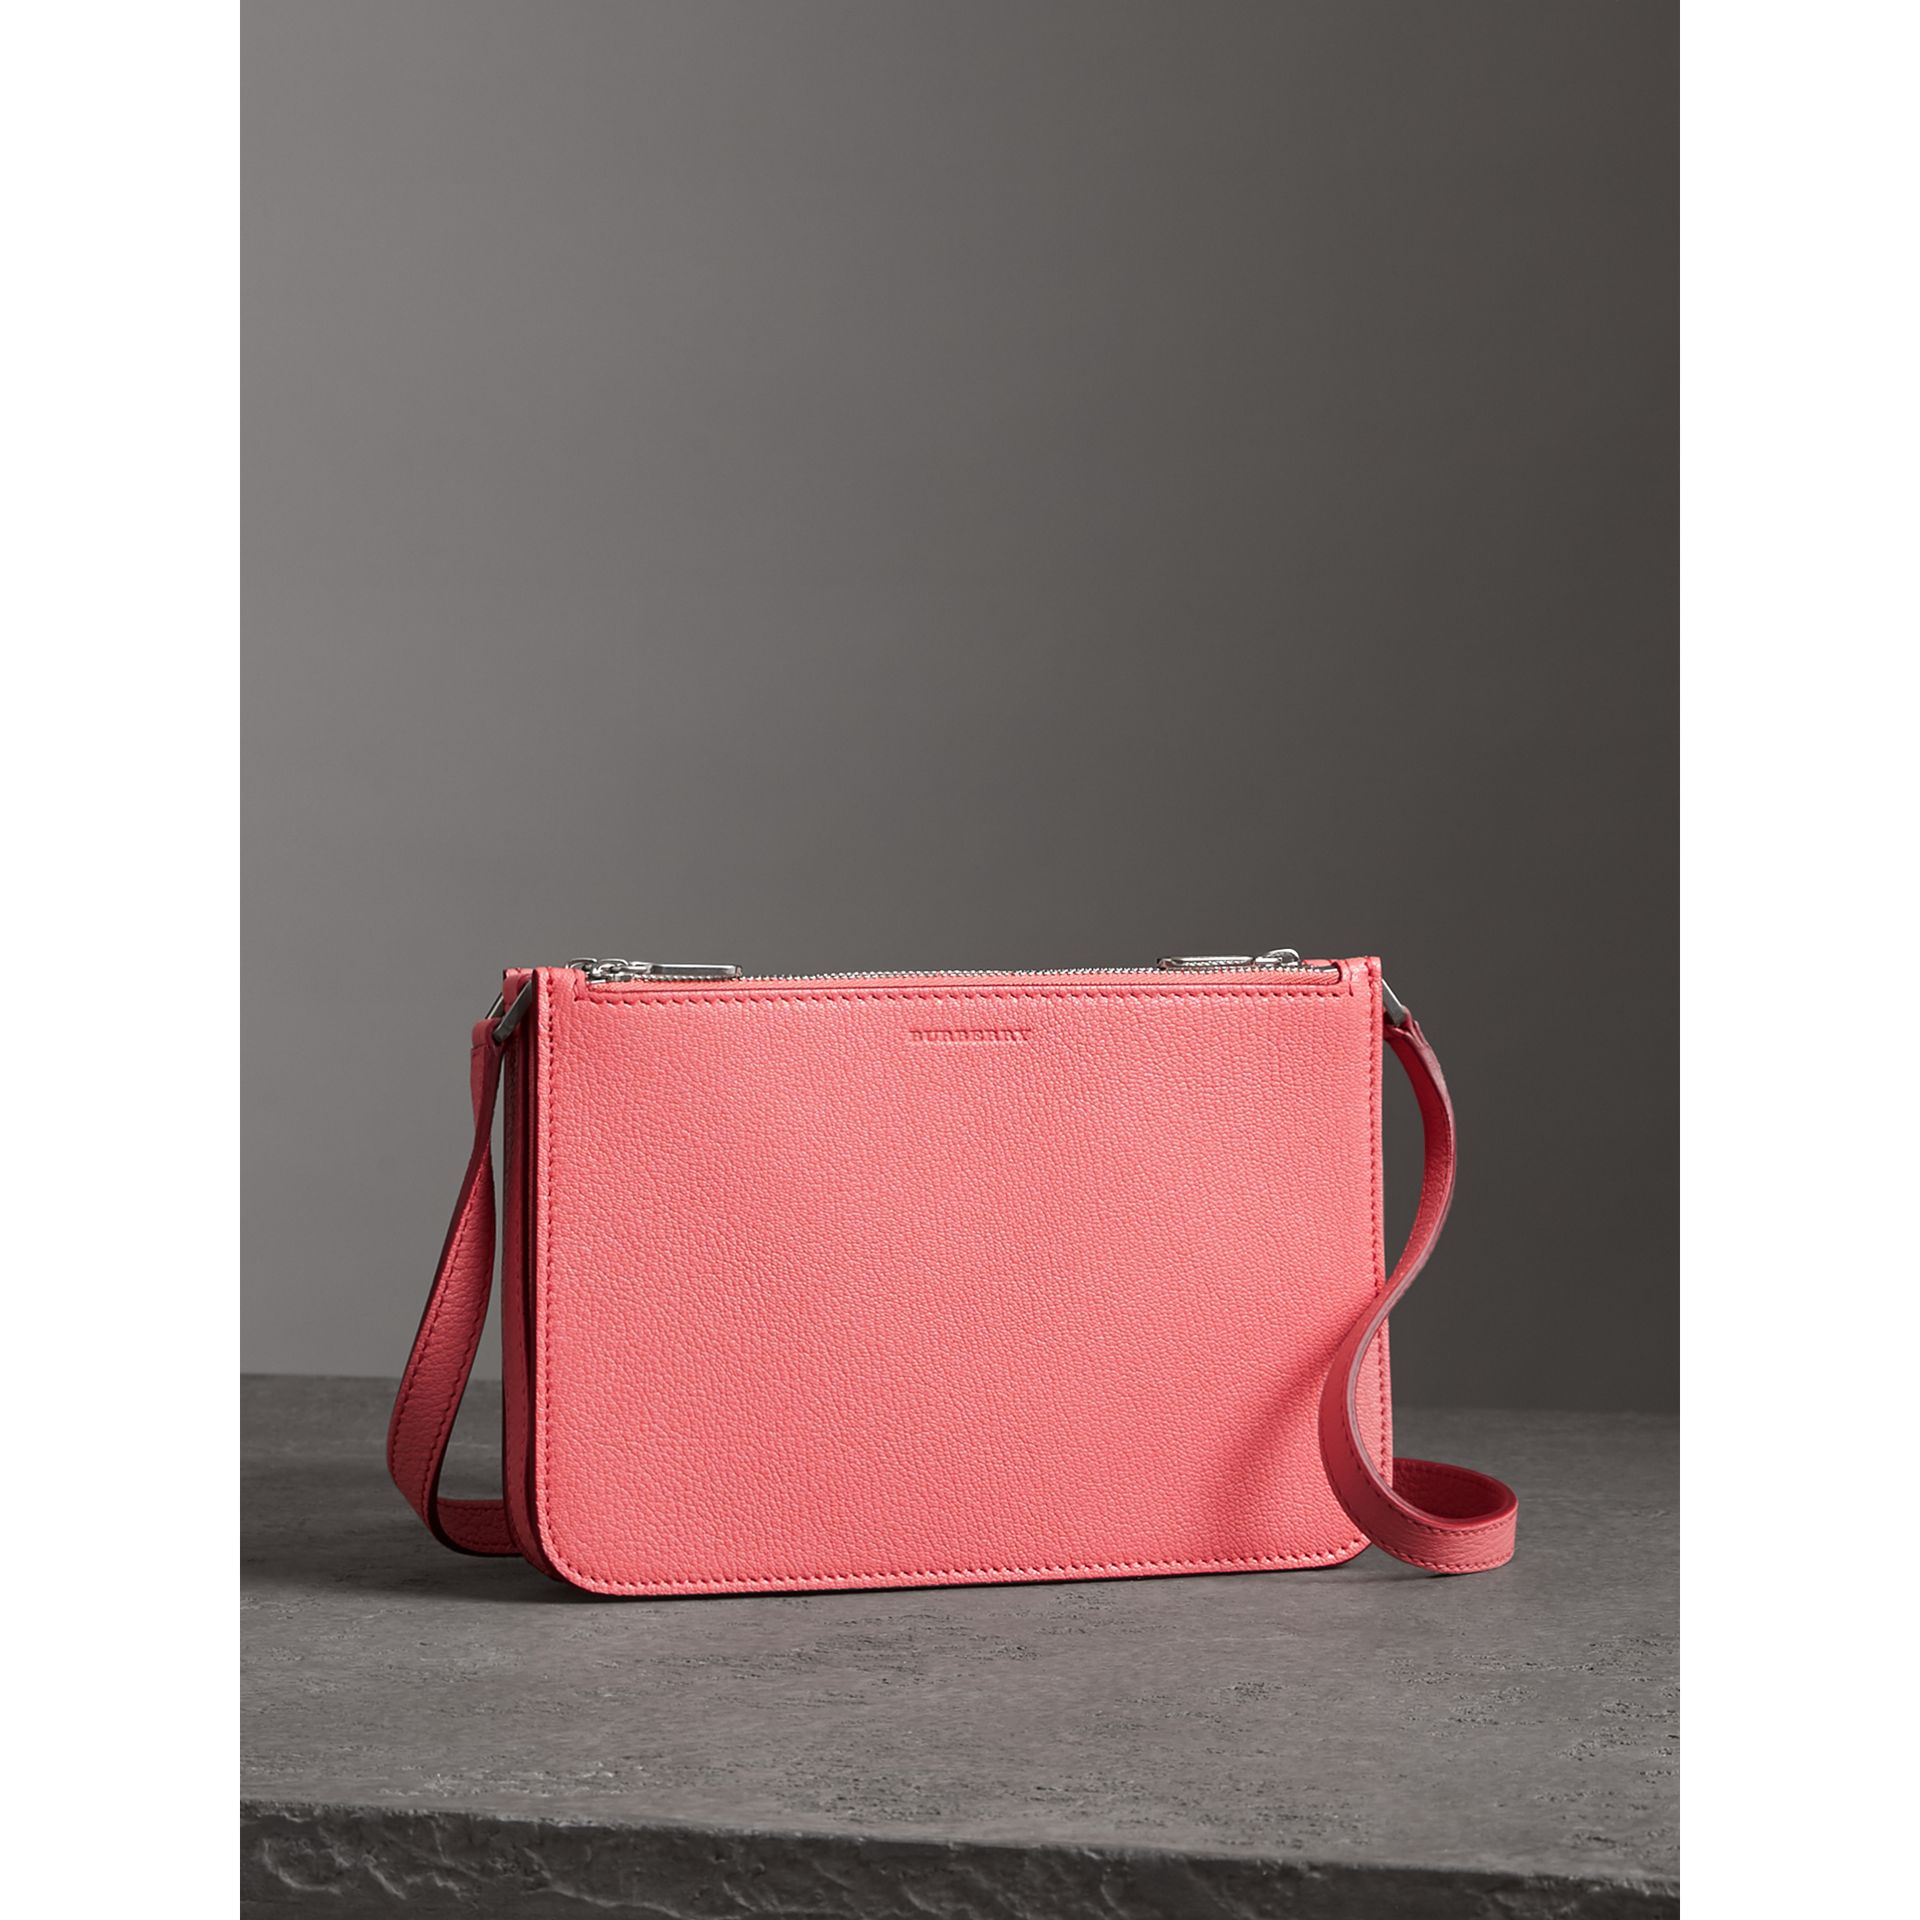 Triple Zip Grainy Leather Crossbody Bag in Bright Coral Pink - Women | Burberry - gallery image 6